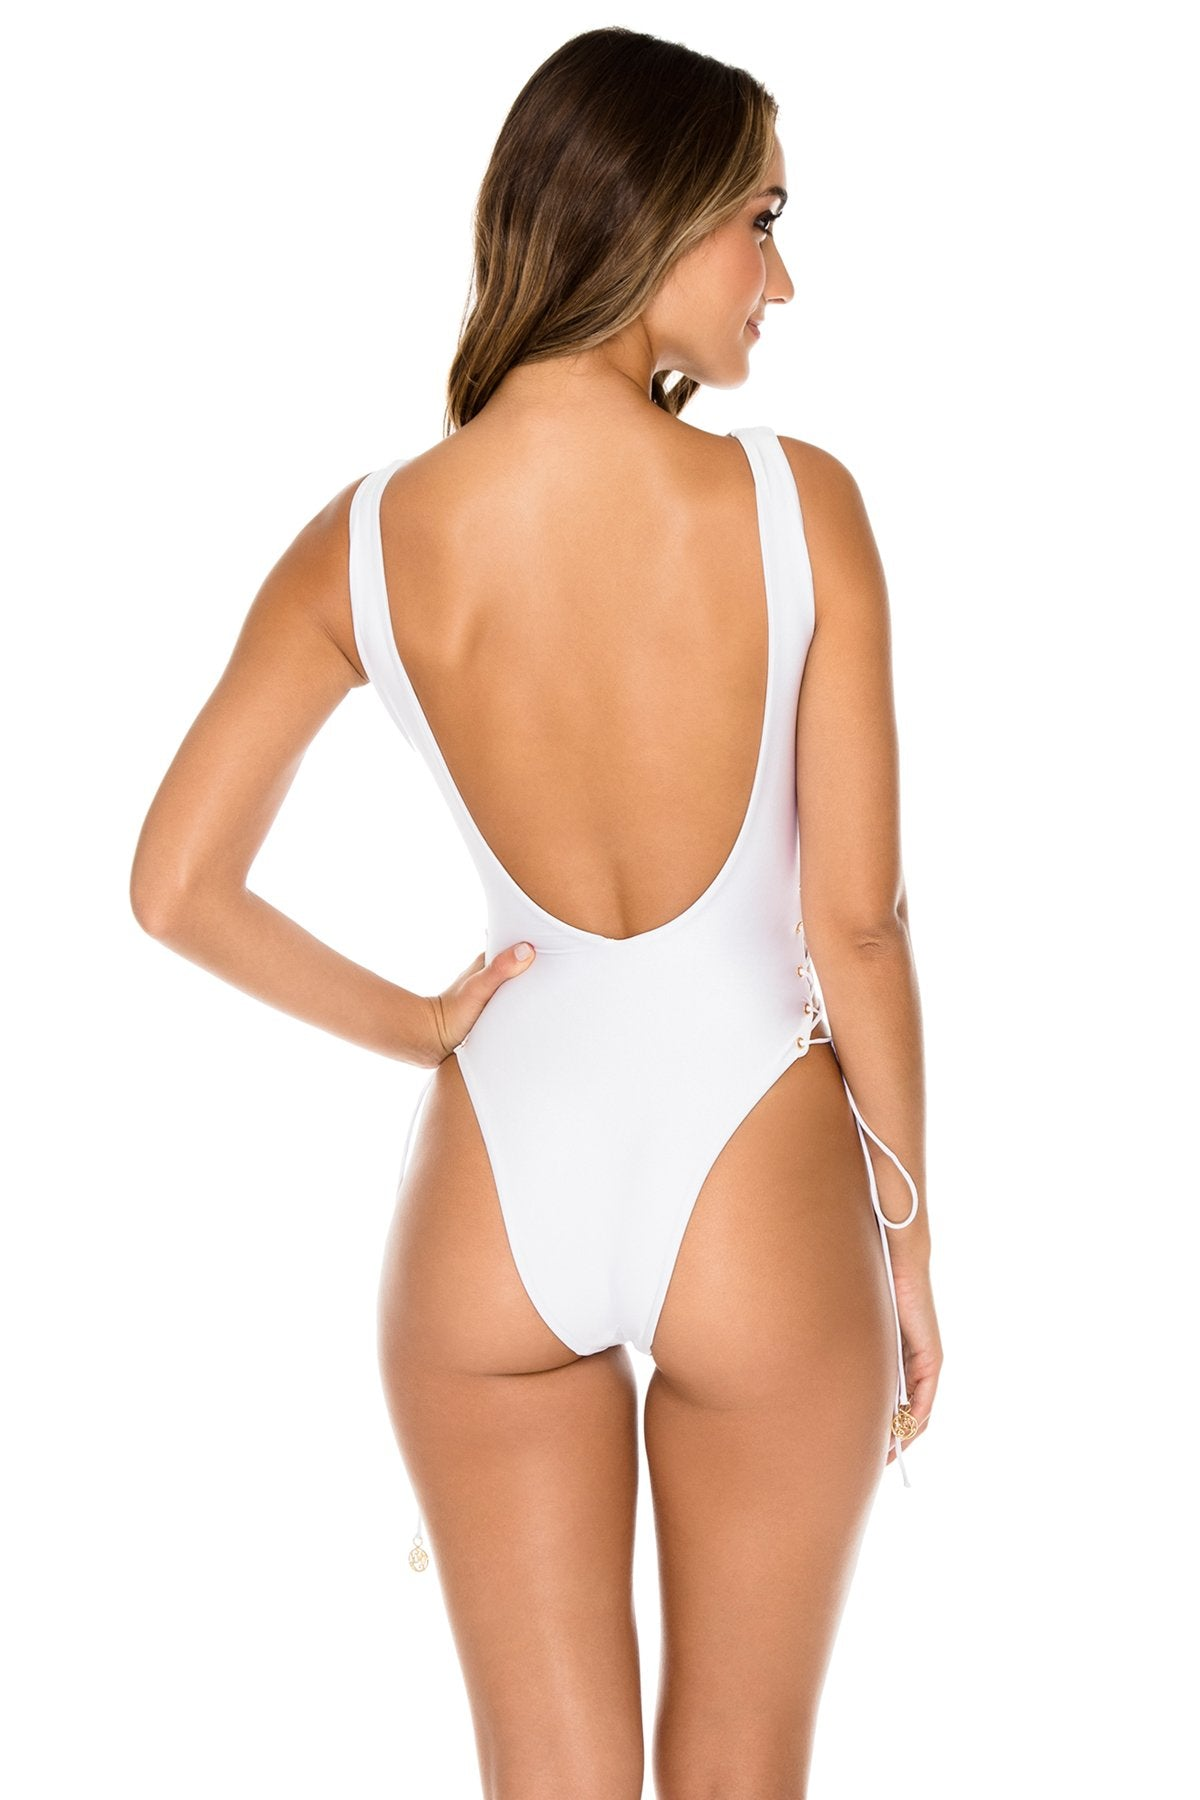 LA CORREDERA - Open Side One Piece Bodysuit • White